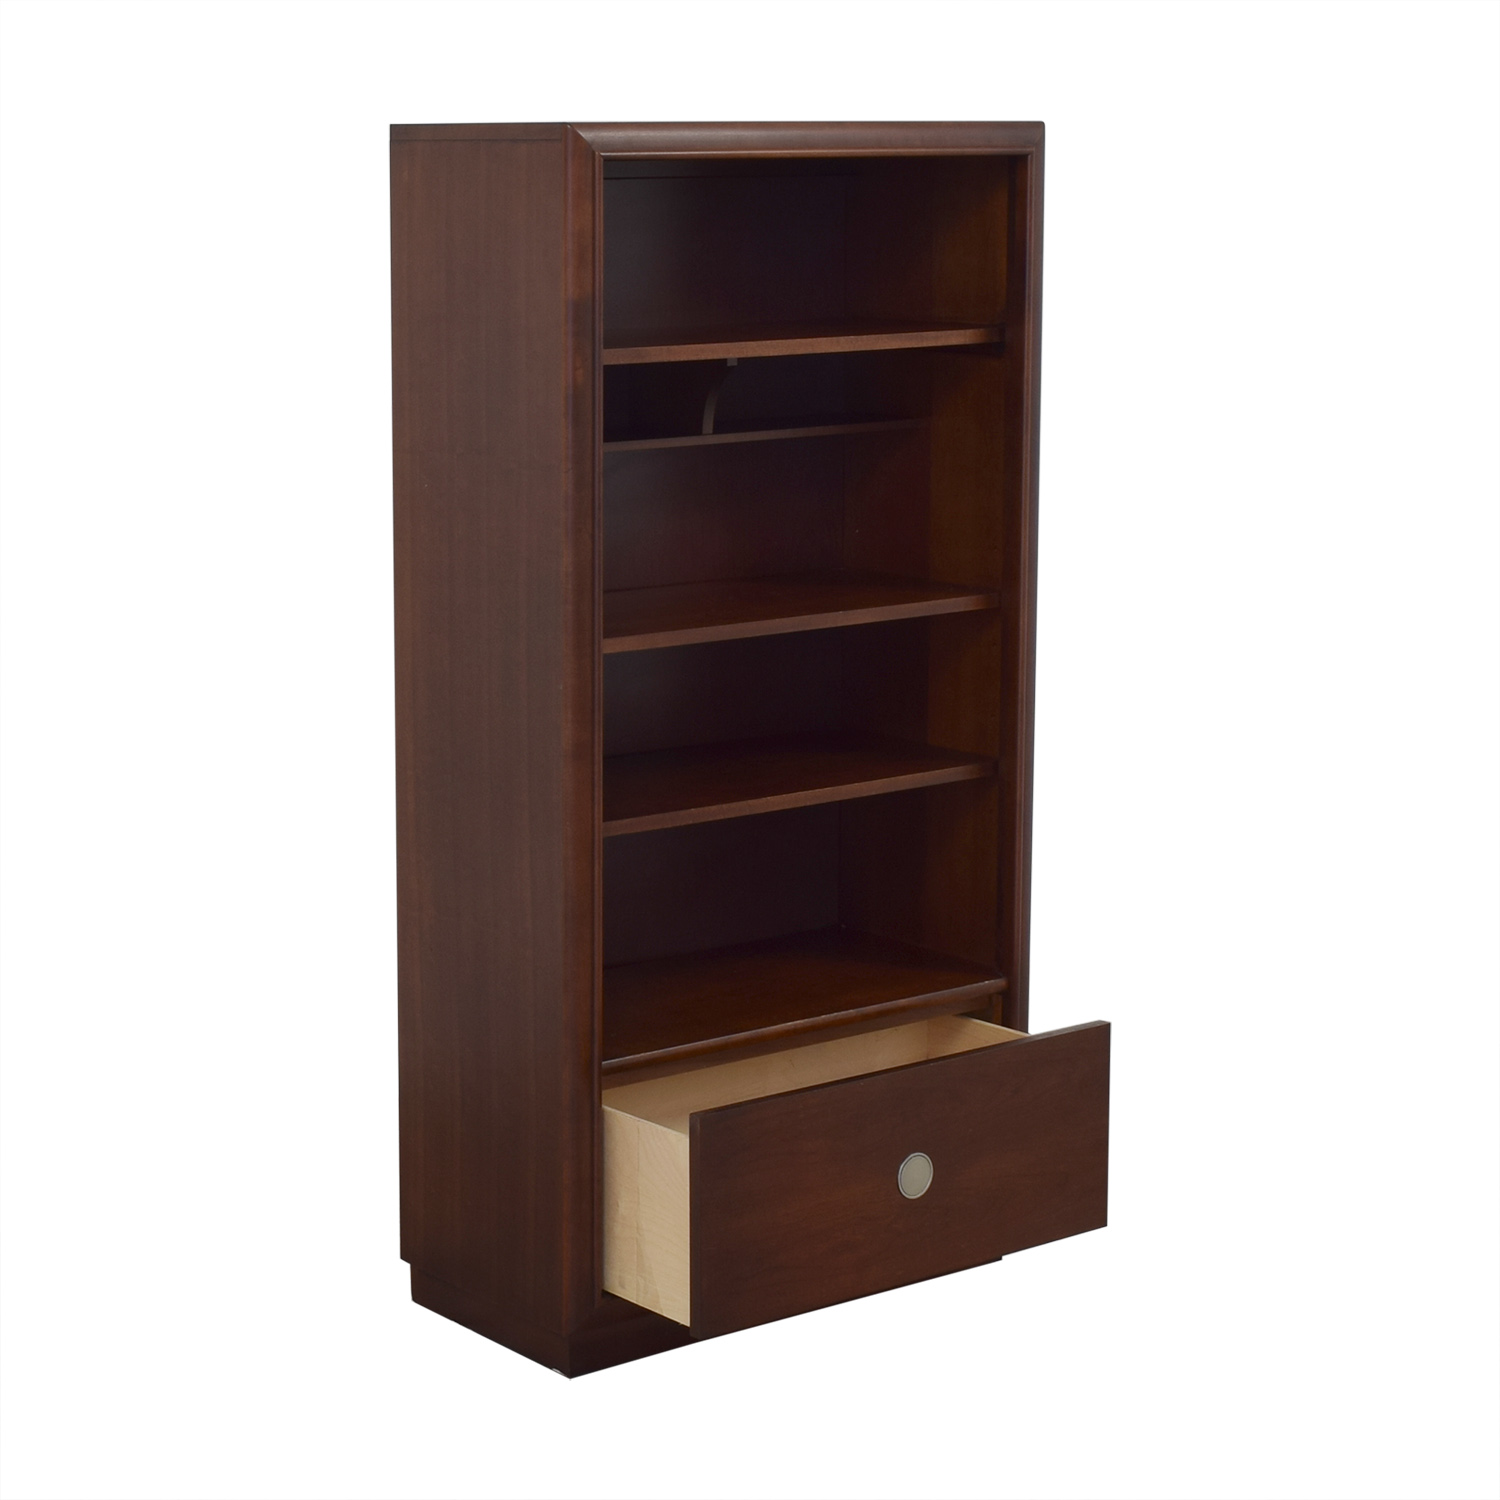 Stanley Furniture Stanley Furniture Bookshelf with Drawer coupon